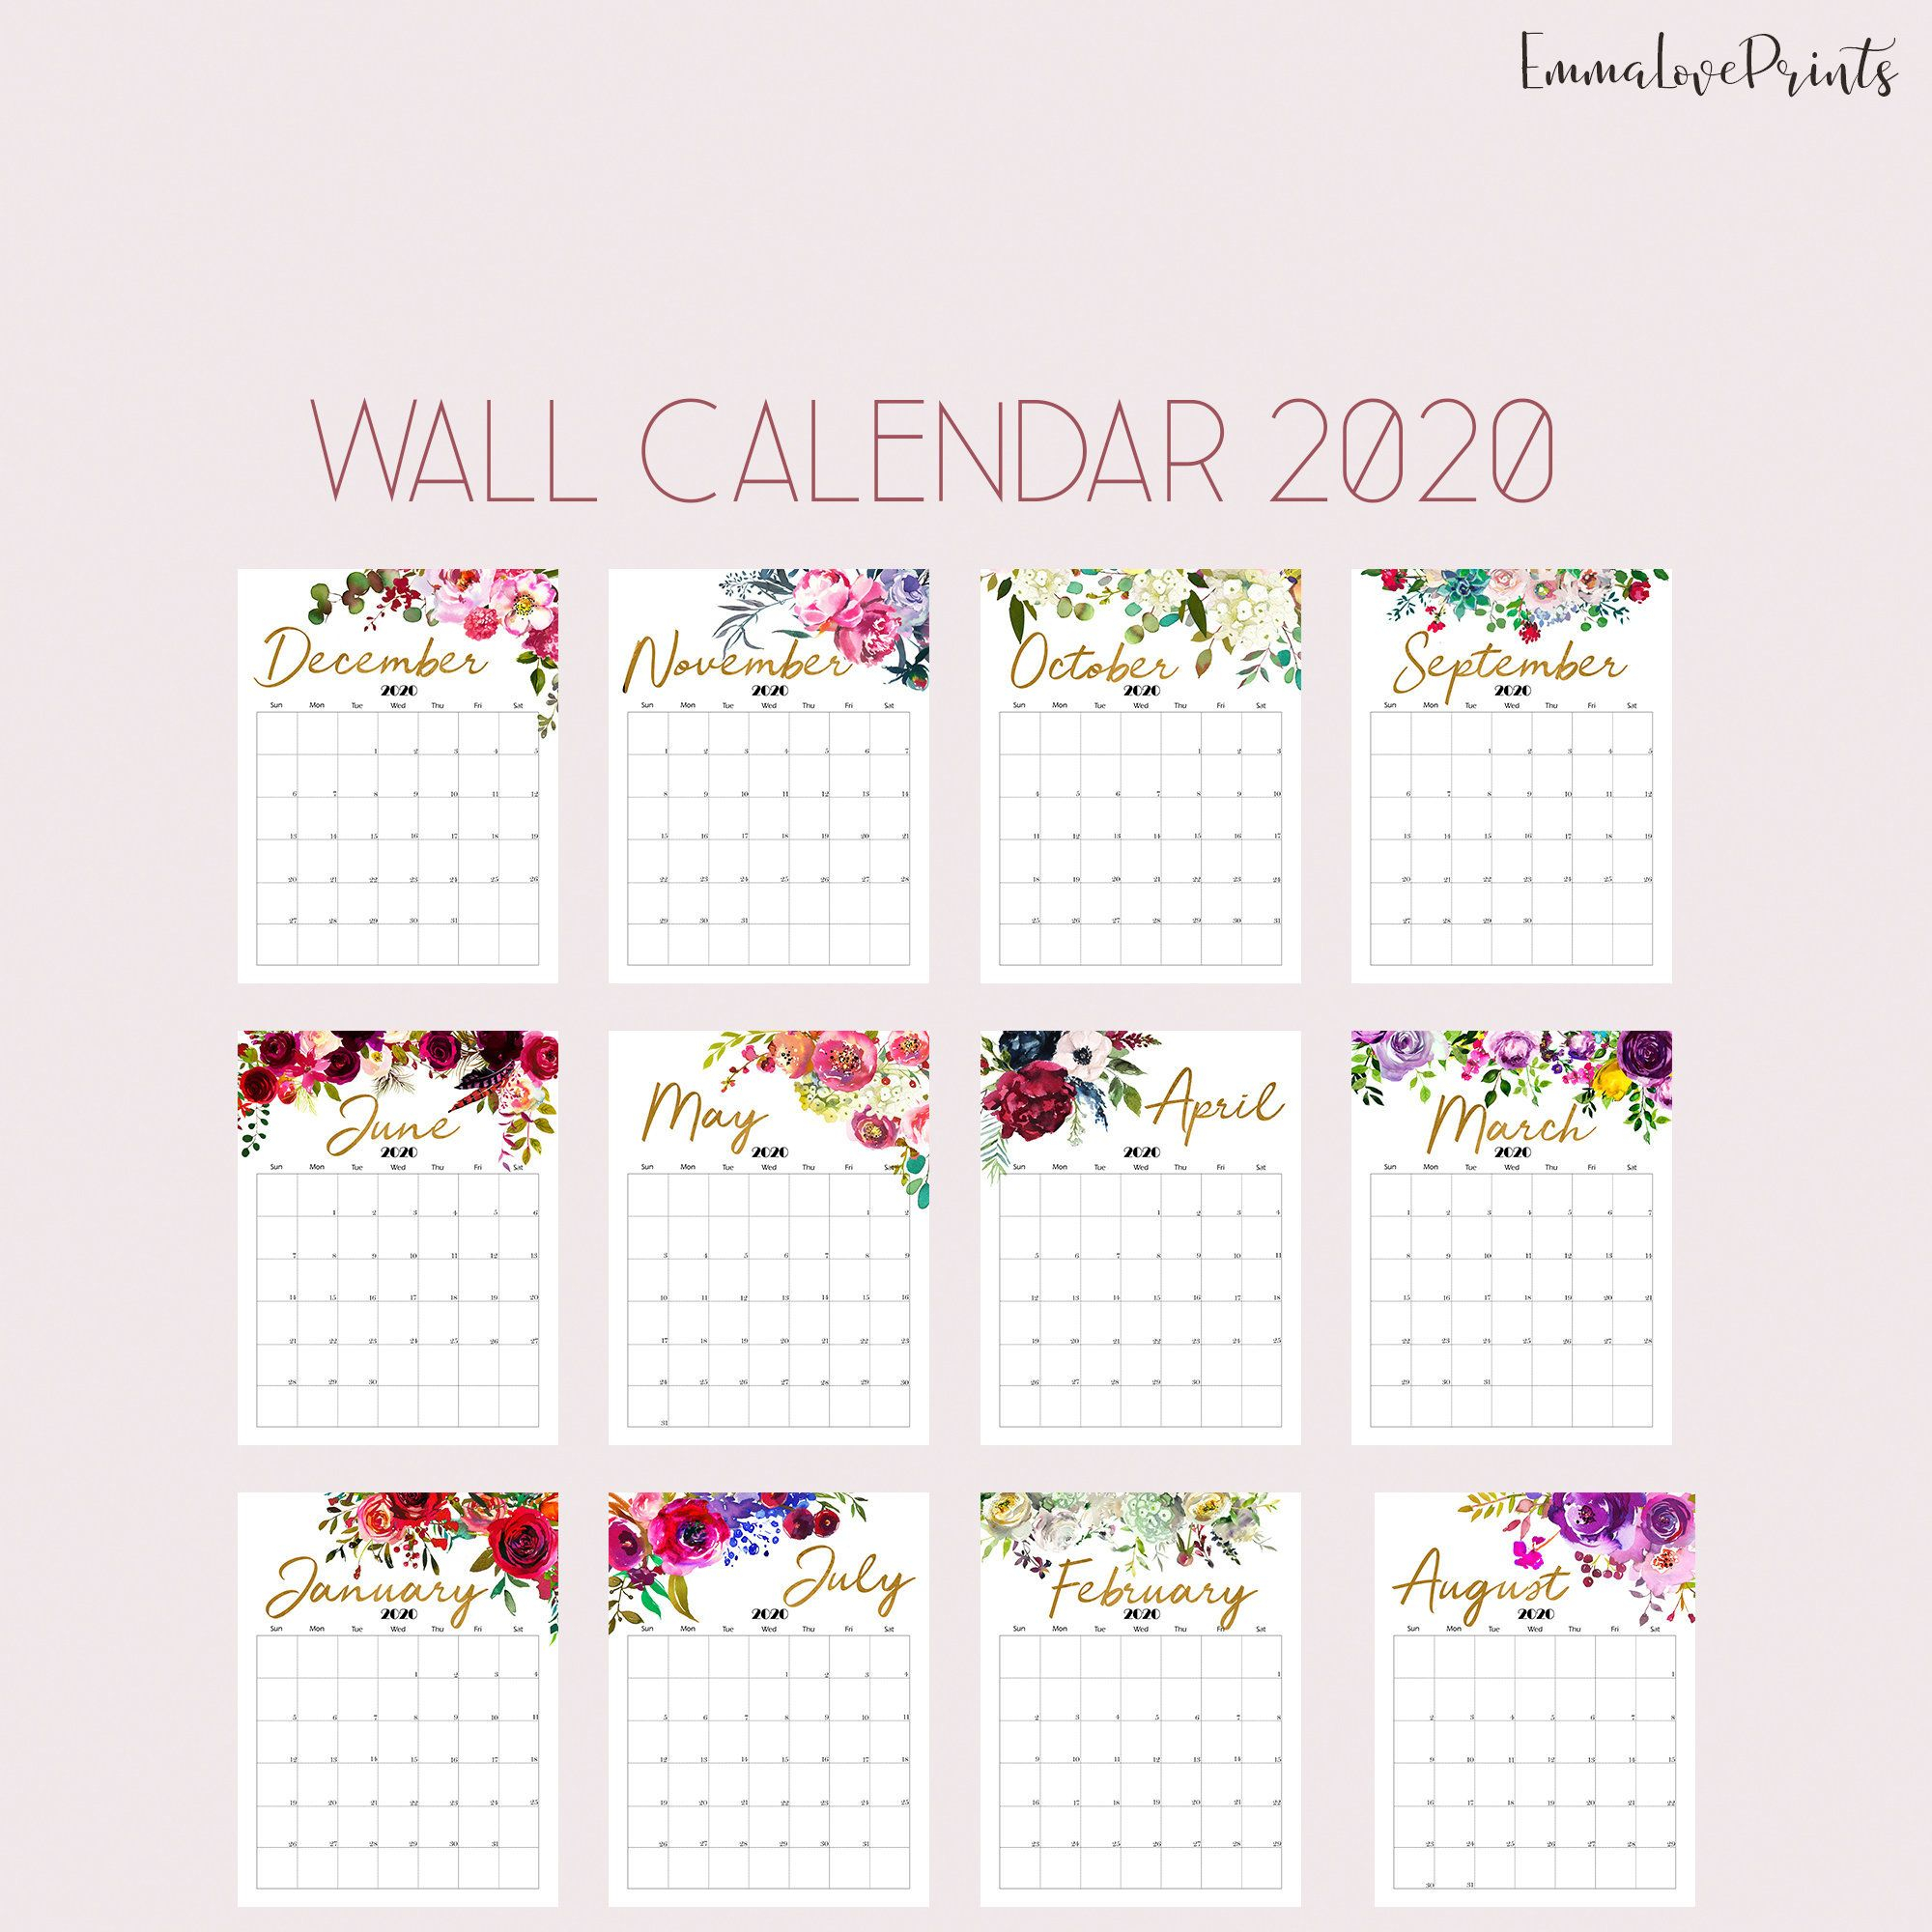 Printable Calendar 2020 Wall Calendar 2020 Desk Calendar, Floral intended for 2020 Free Printable 8.5 X11 Monthly Calendars